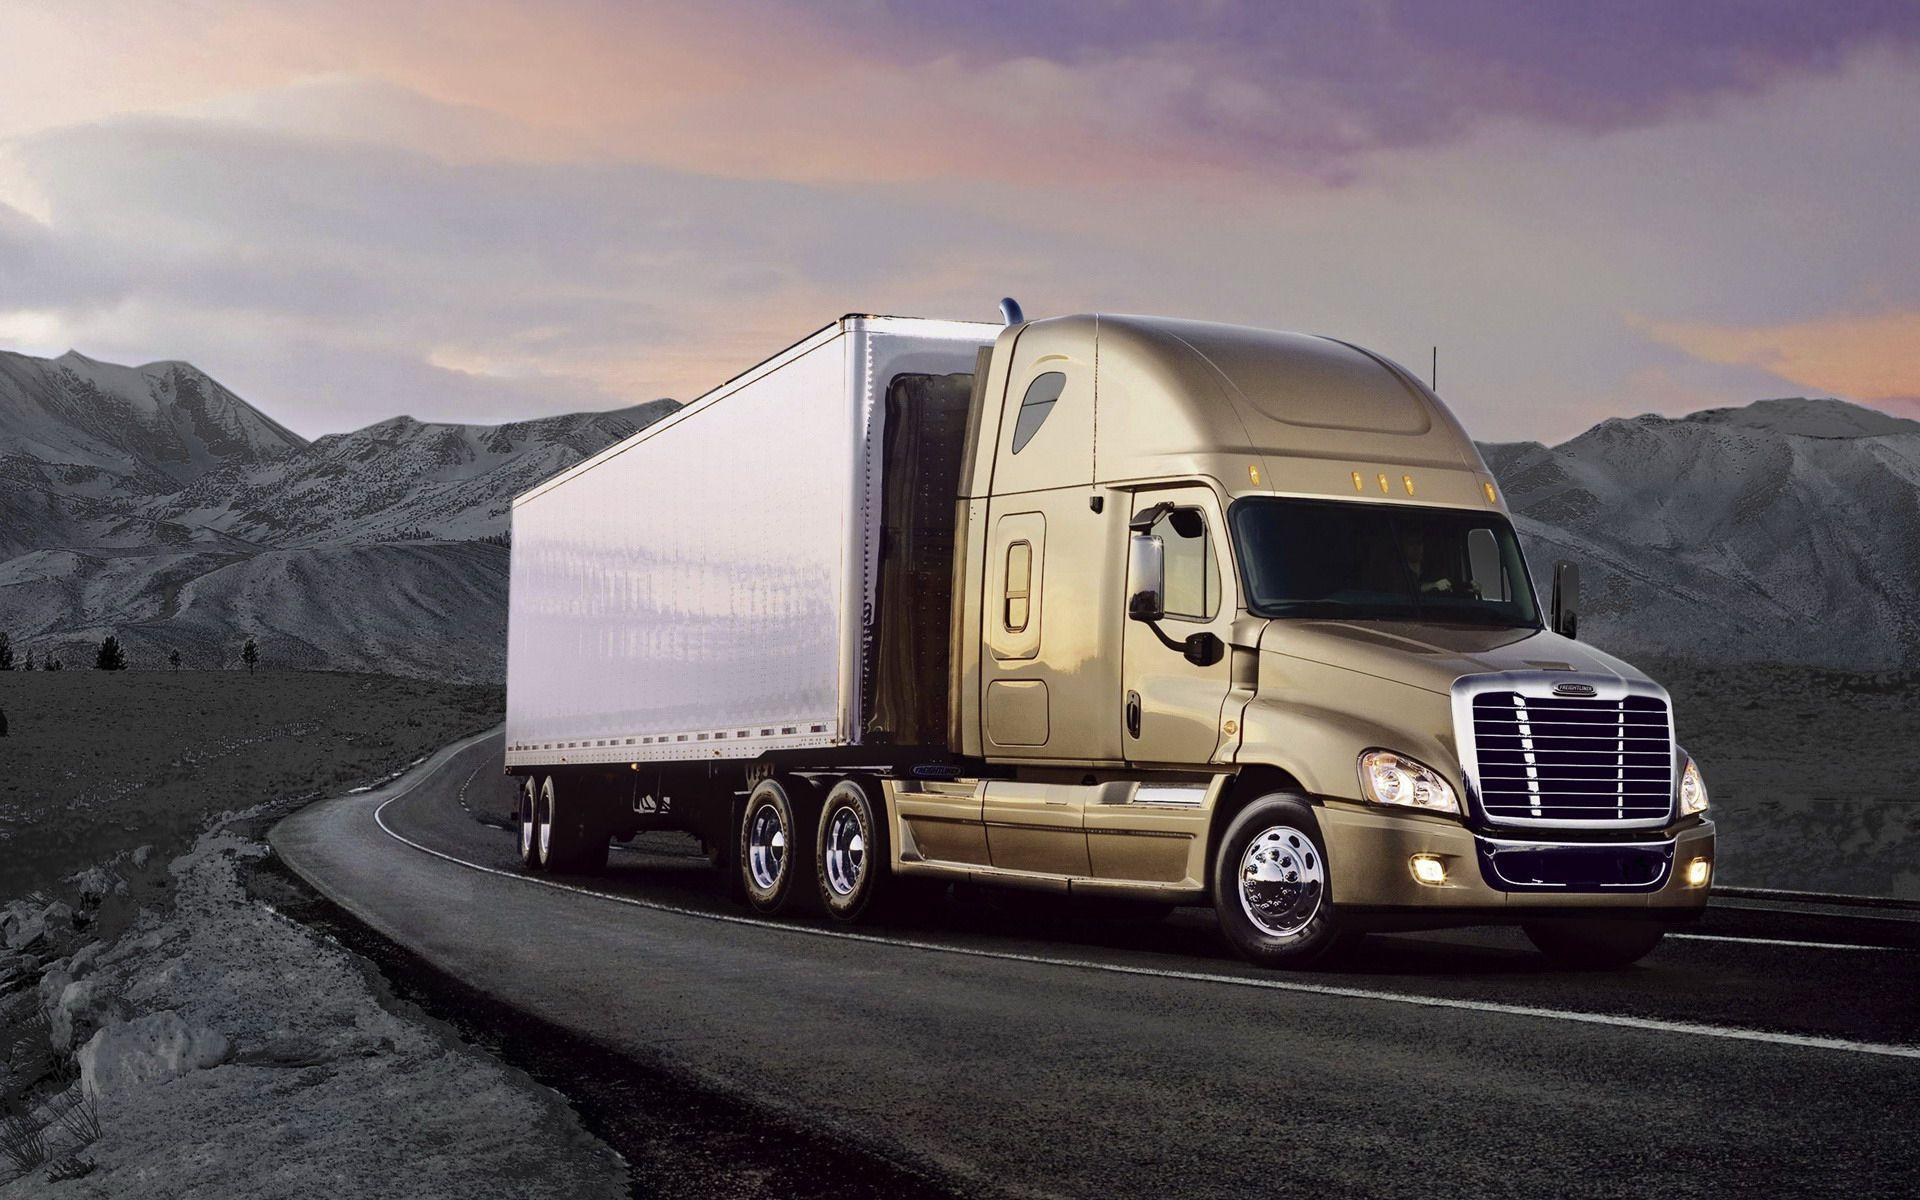 Powerful Freightliner truck on the road